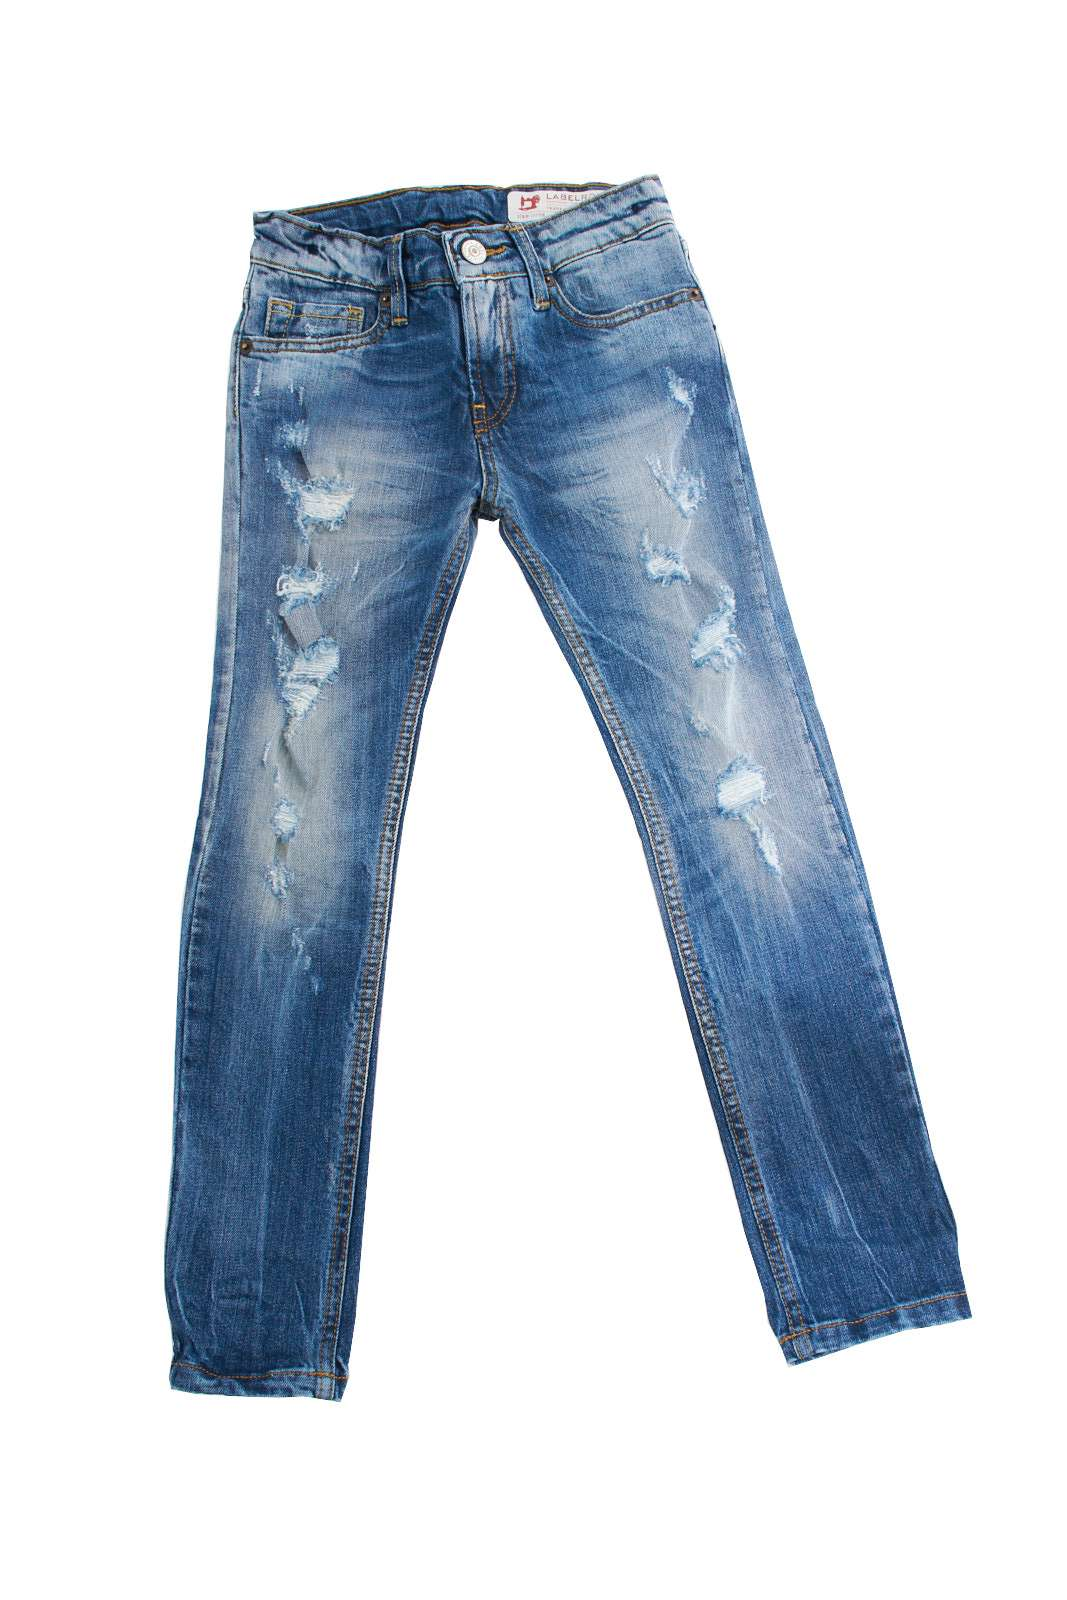 https://www.parmax.com/media/catalog/product/a/i/PE-outlet_parmax-denim-bambino-Label-Route-KANSAS-A.jpg